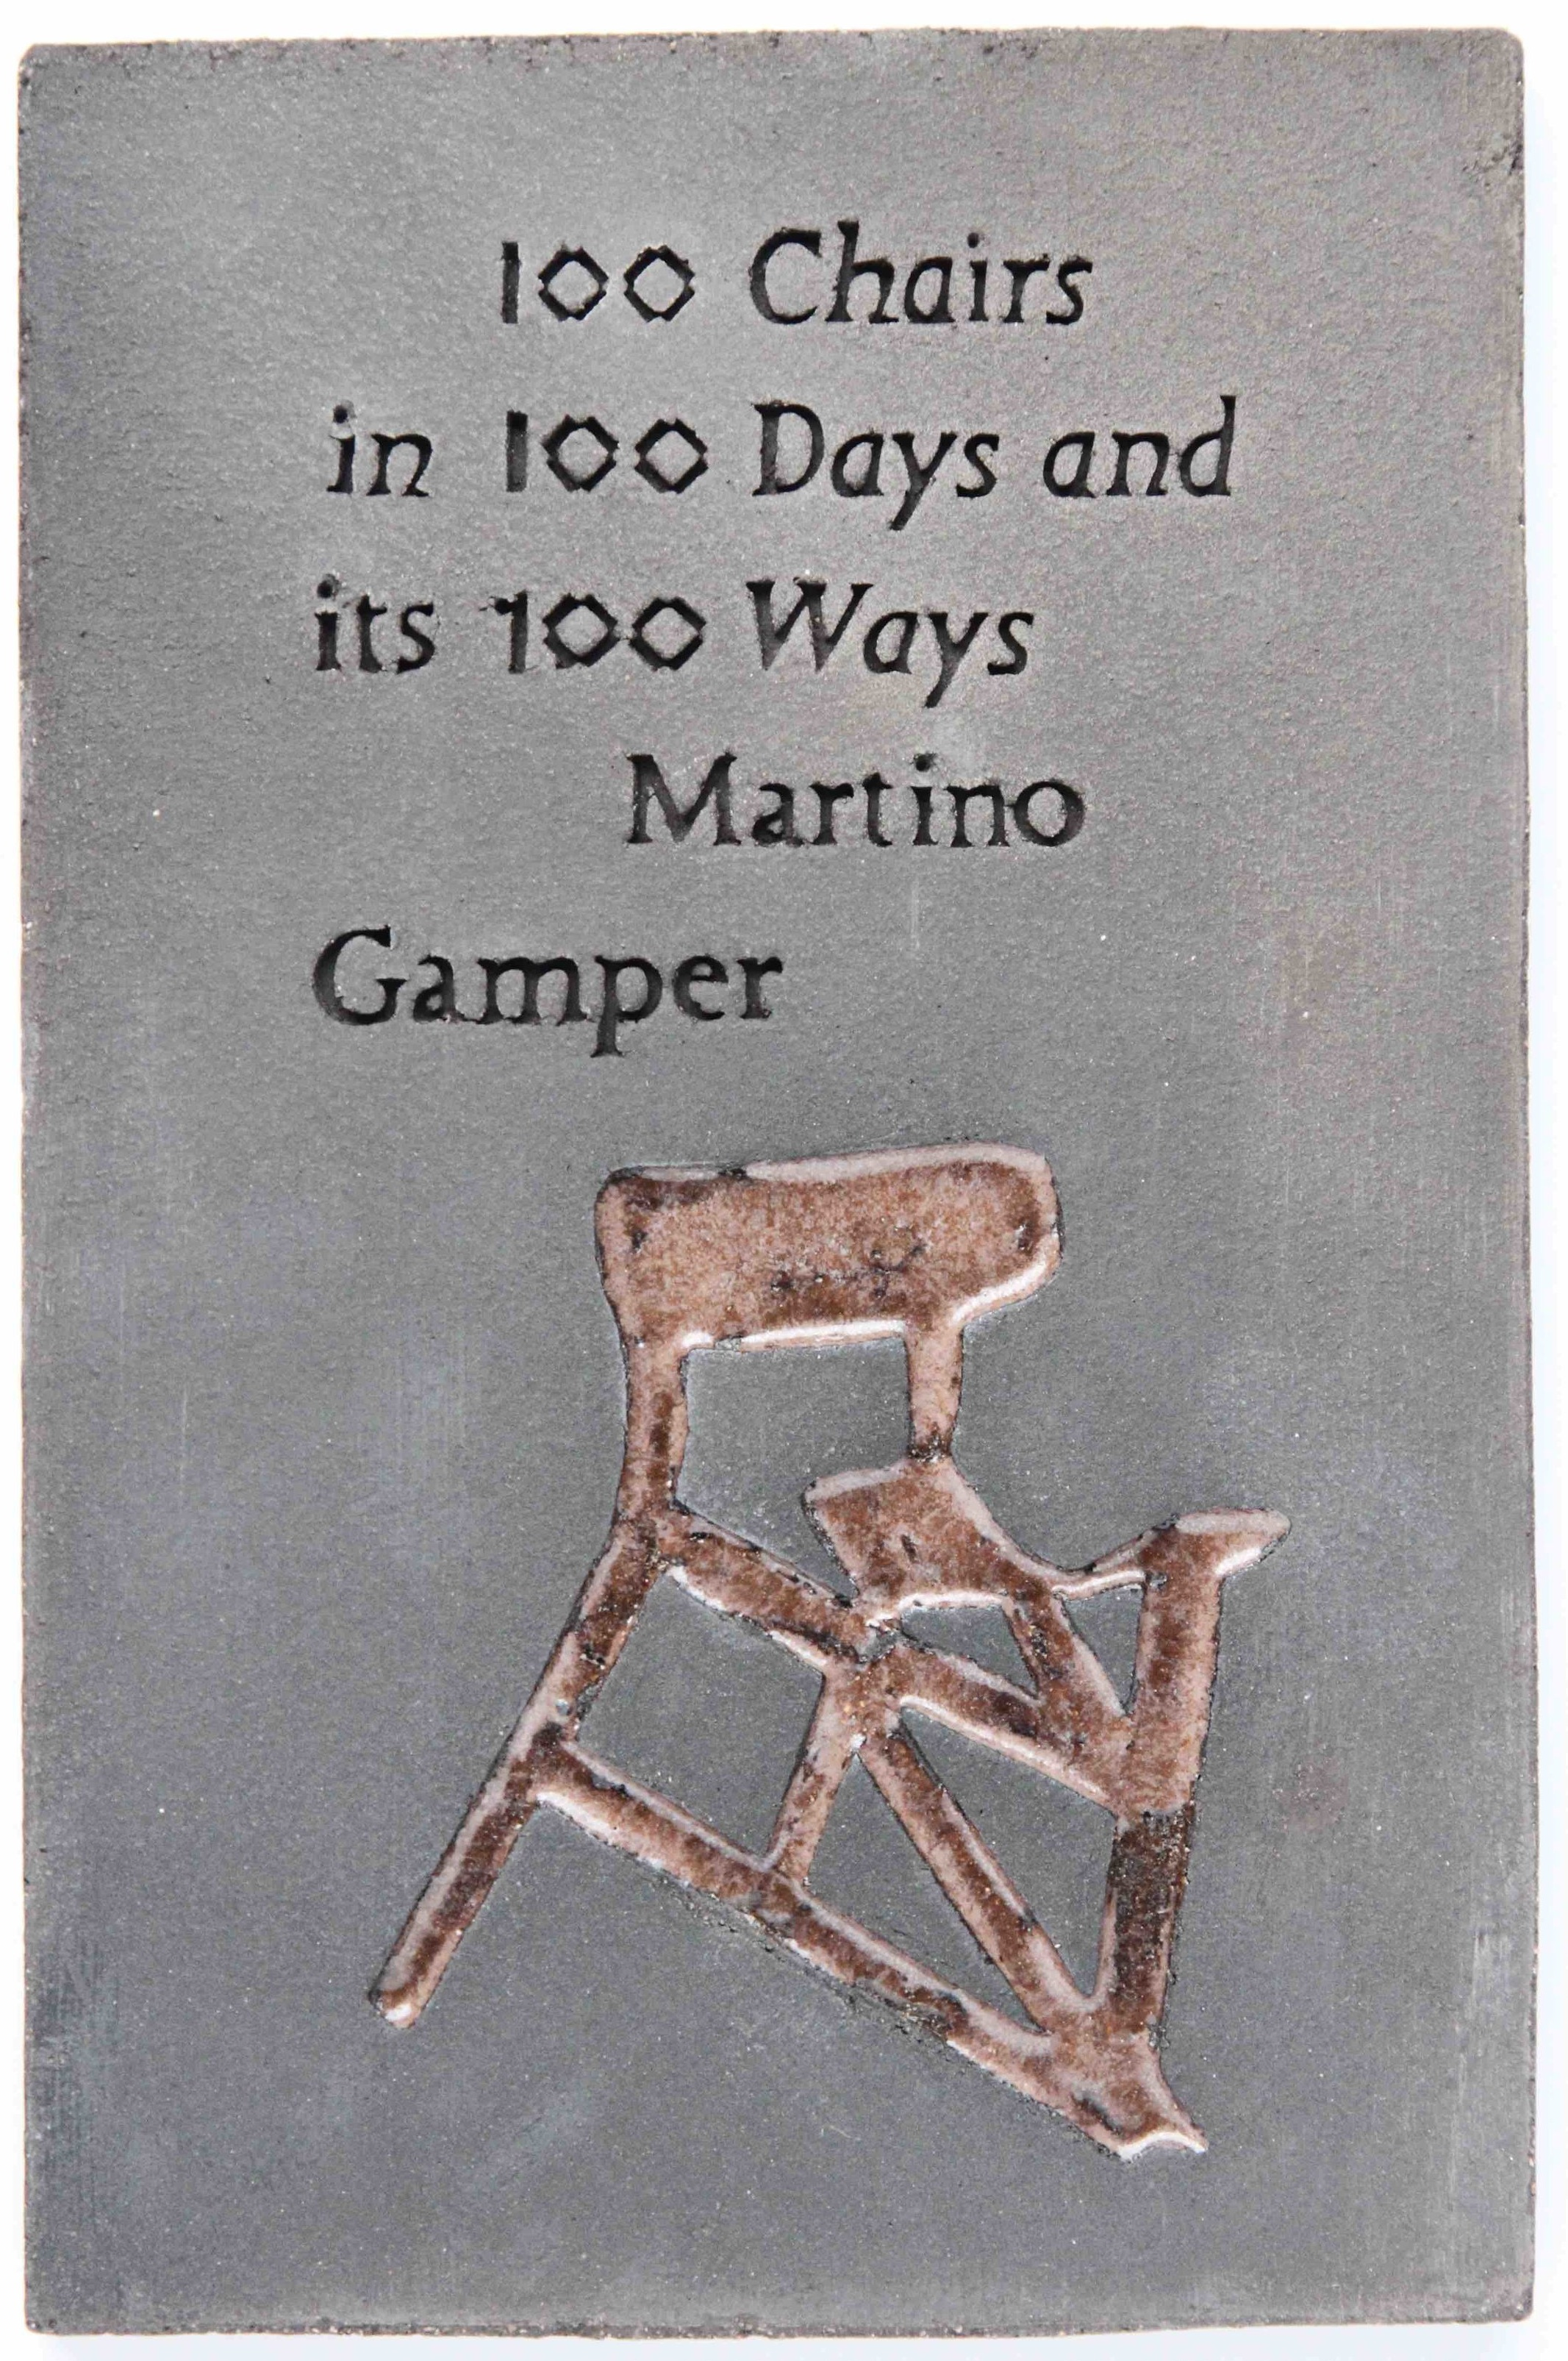 100+Chairs+in+100+Days+3.jpg